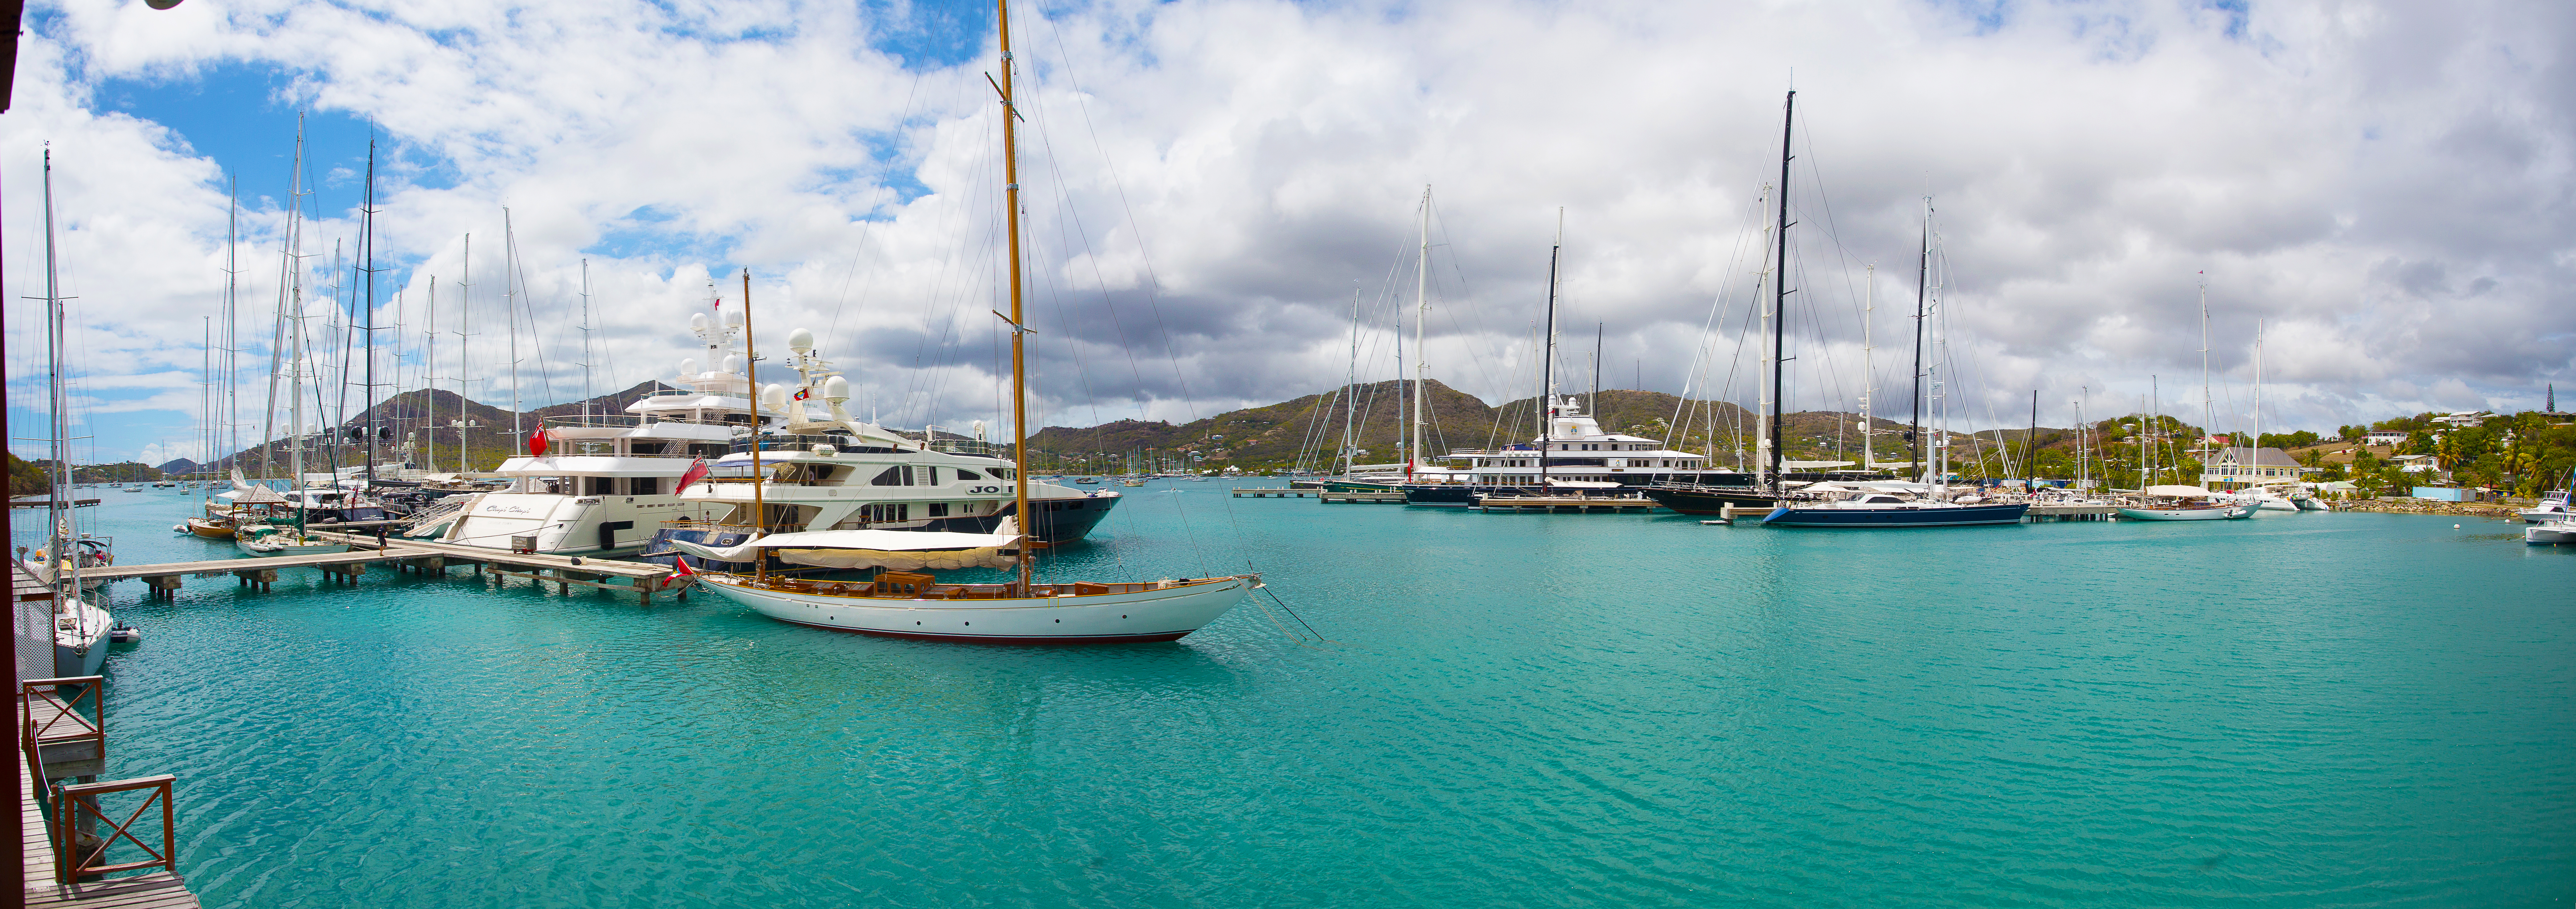 panoramic photograph of a harbour.